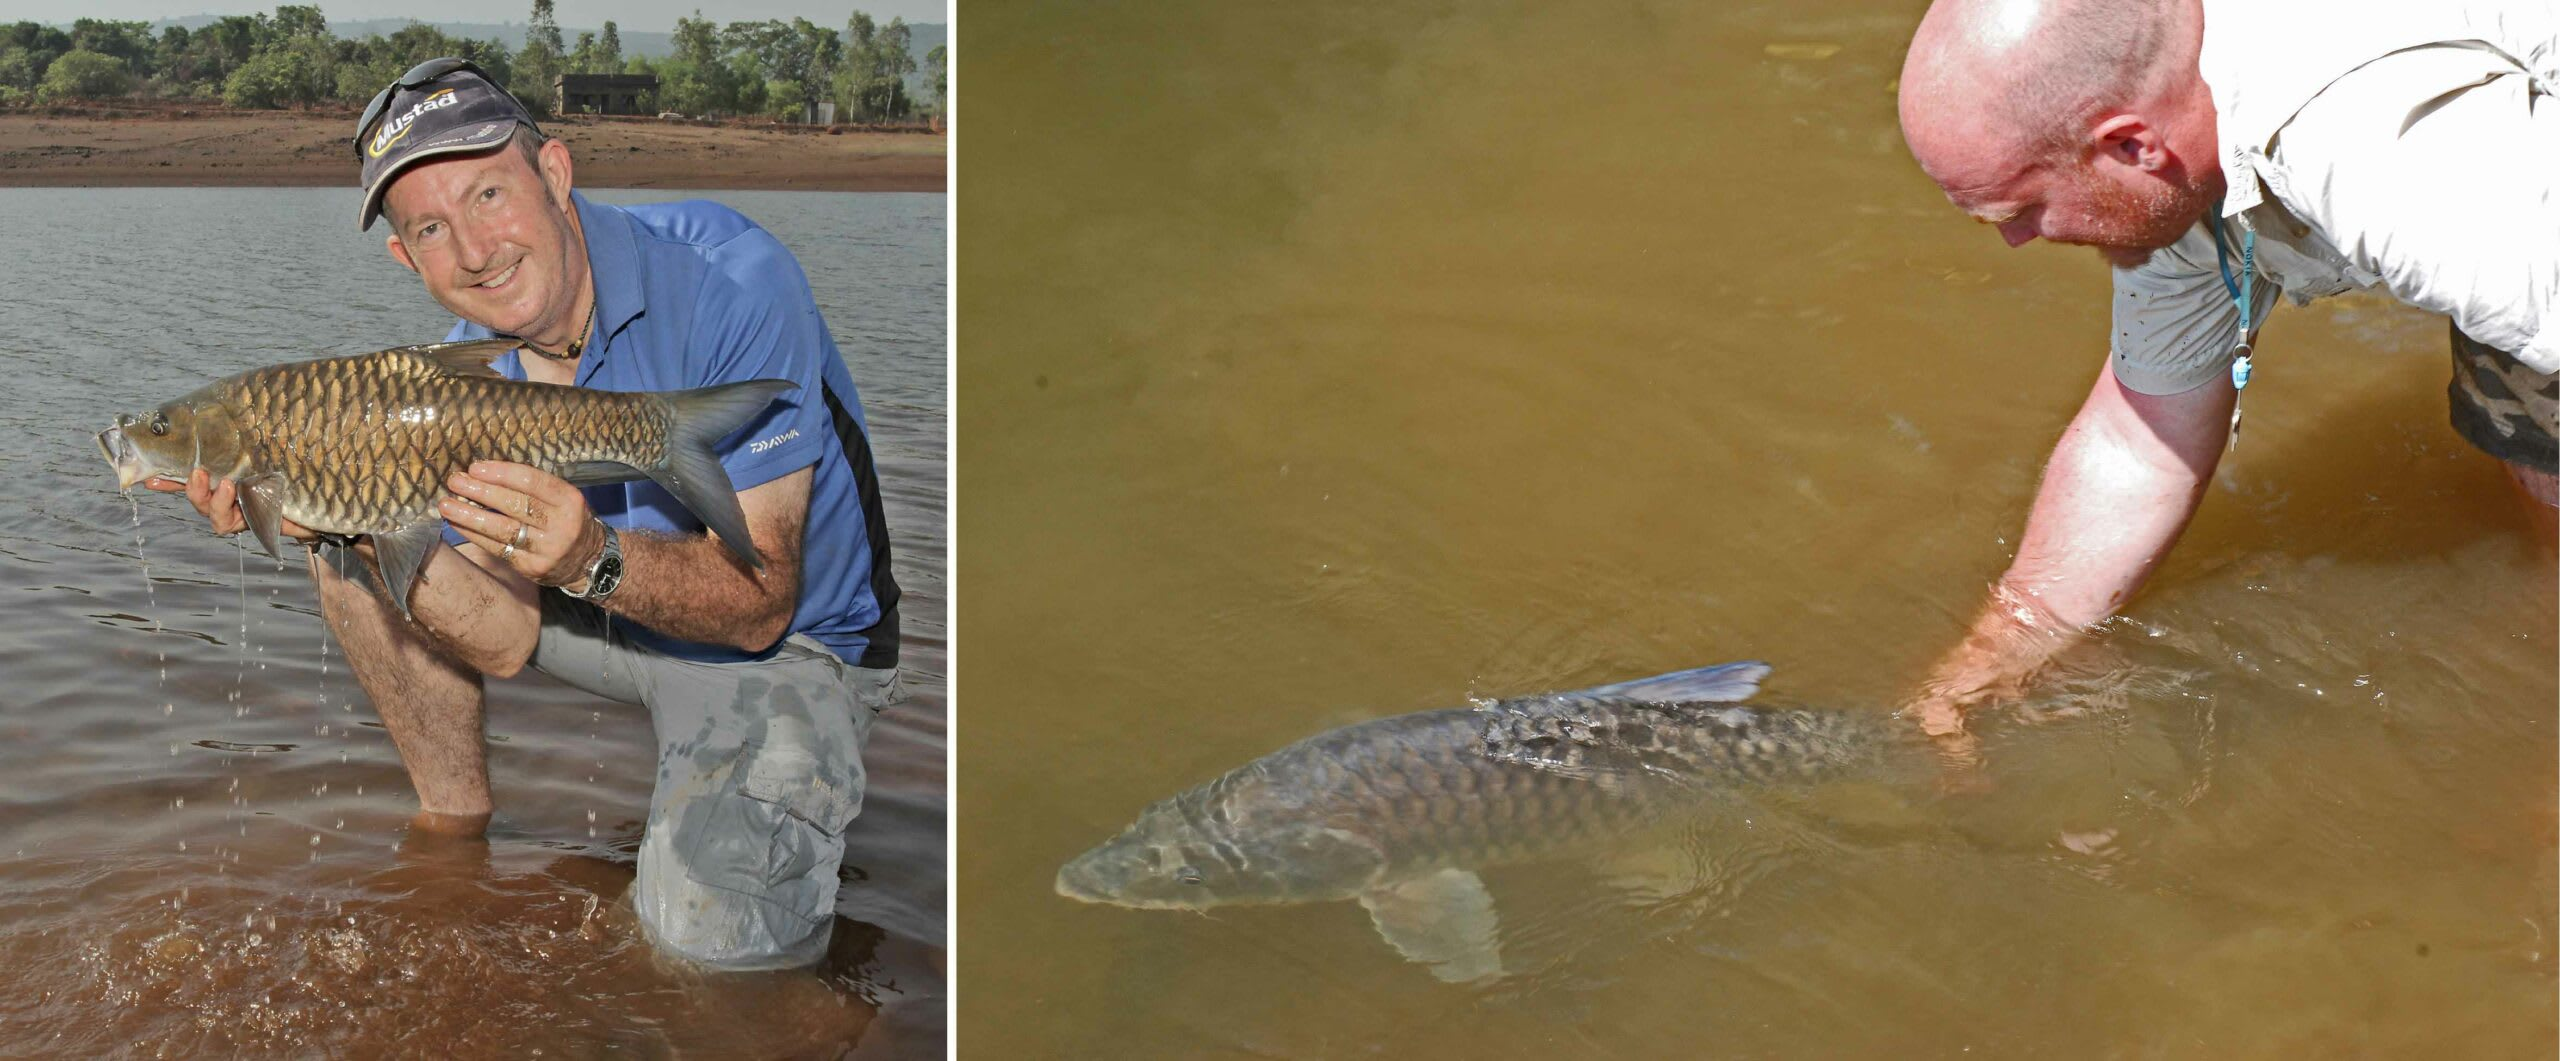 (Left) Steve Lockett, Executive Director of the Mahseer Trust, holds a Tor khudree caught in Maharashtra. He has been working to conserve mahseer and their habitat for the last decade. (Right) UK angler, Ken Loughran, is known for capturing the largest mahseer — a humpback mahseer — that weighed around 54 kg. Loughran has spent many years fishing in the Cauvery. Here, he releases a Tor khudree back into the river. Photos: Steve Lockett